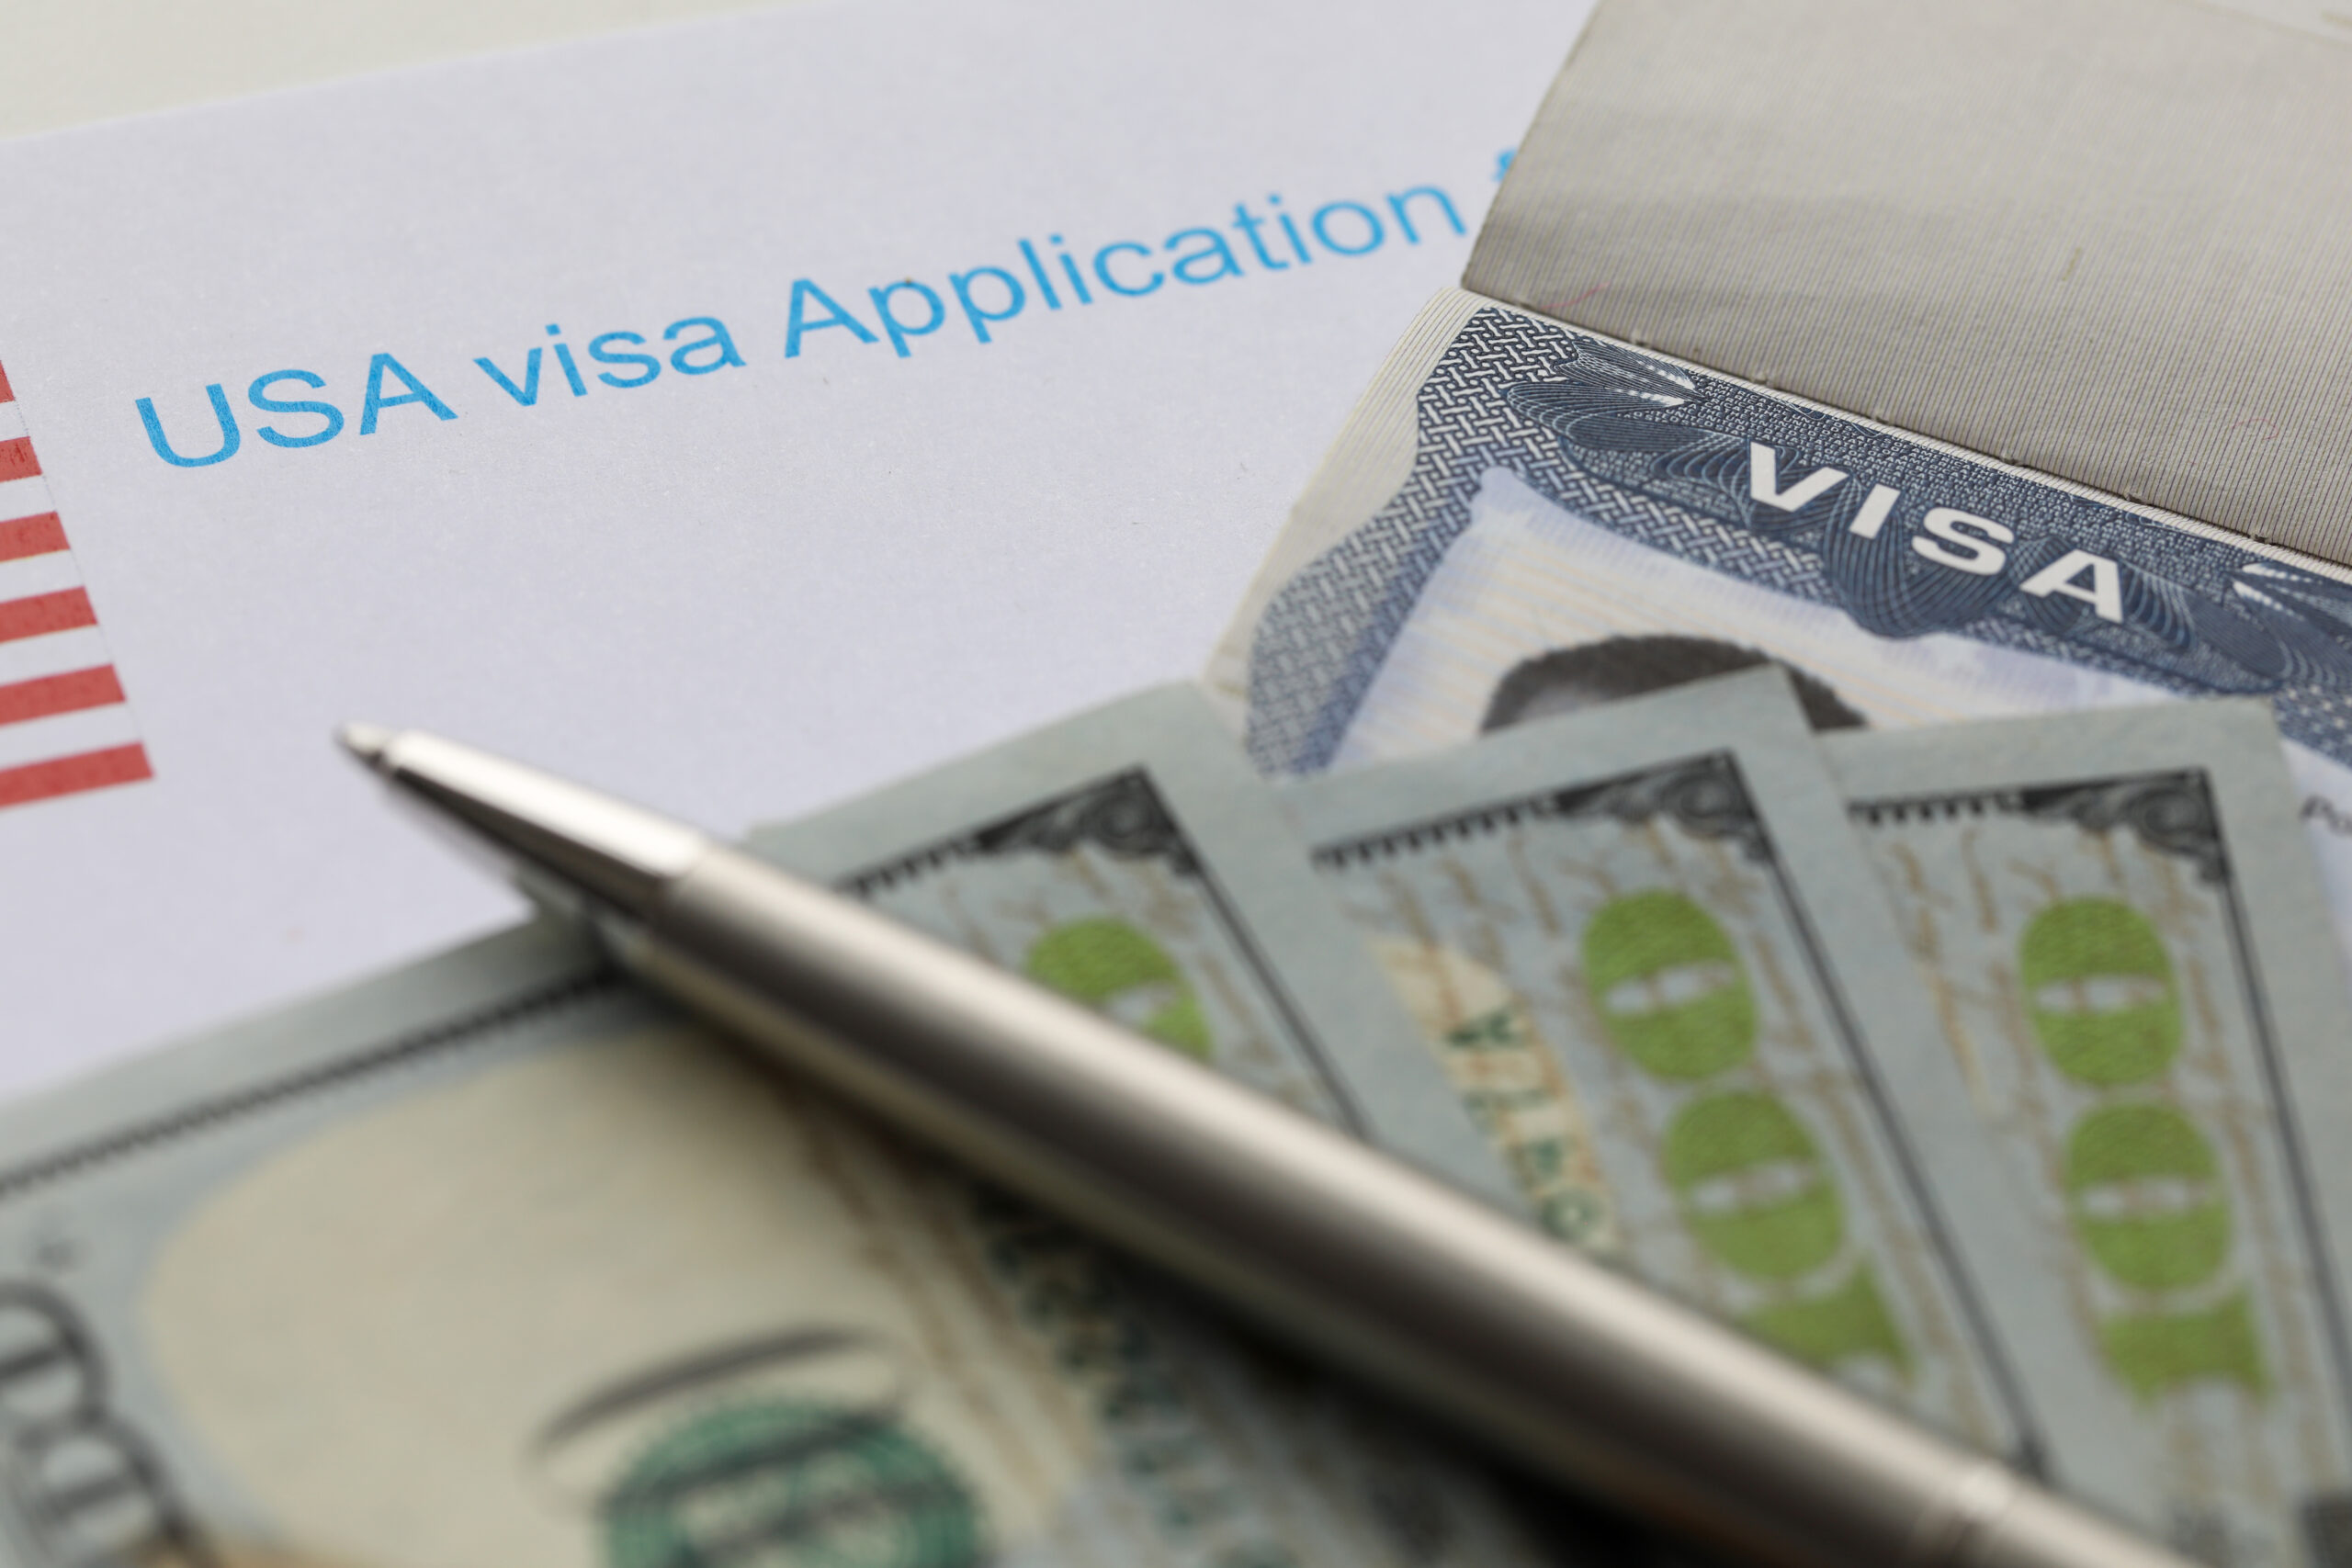 USA Visa Application and Money